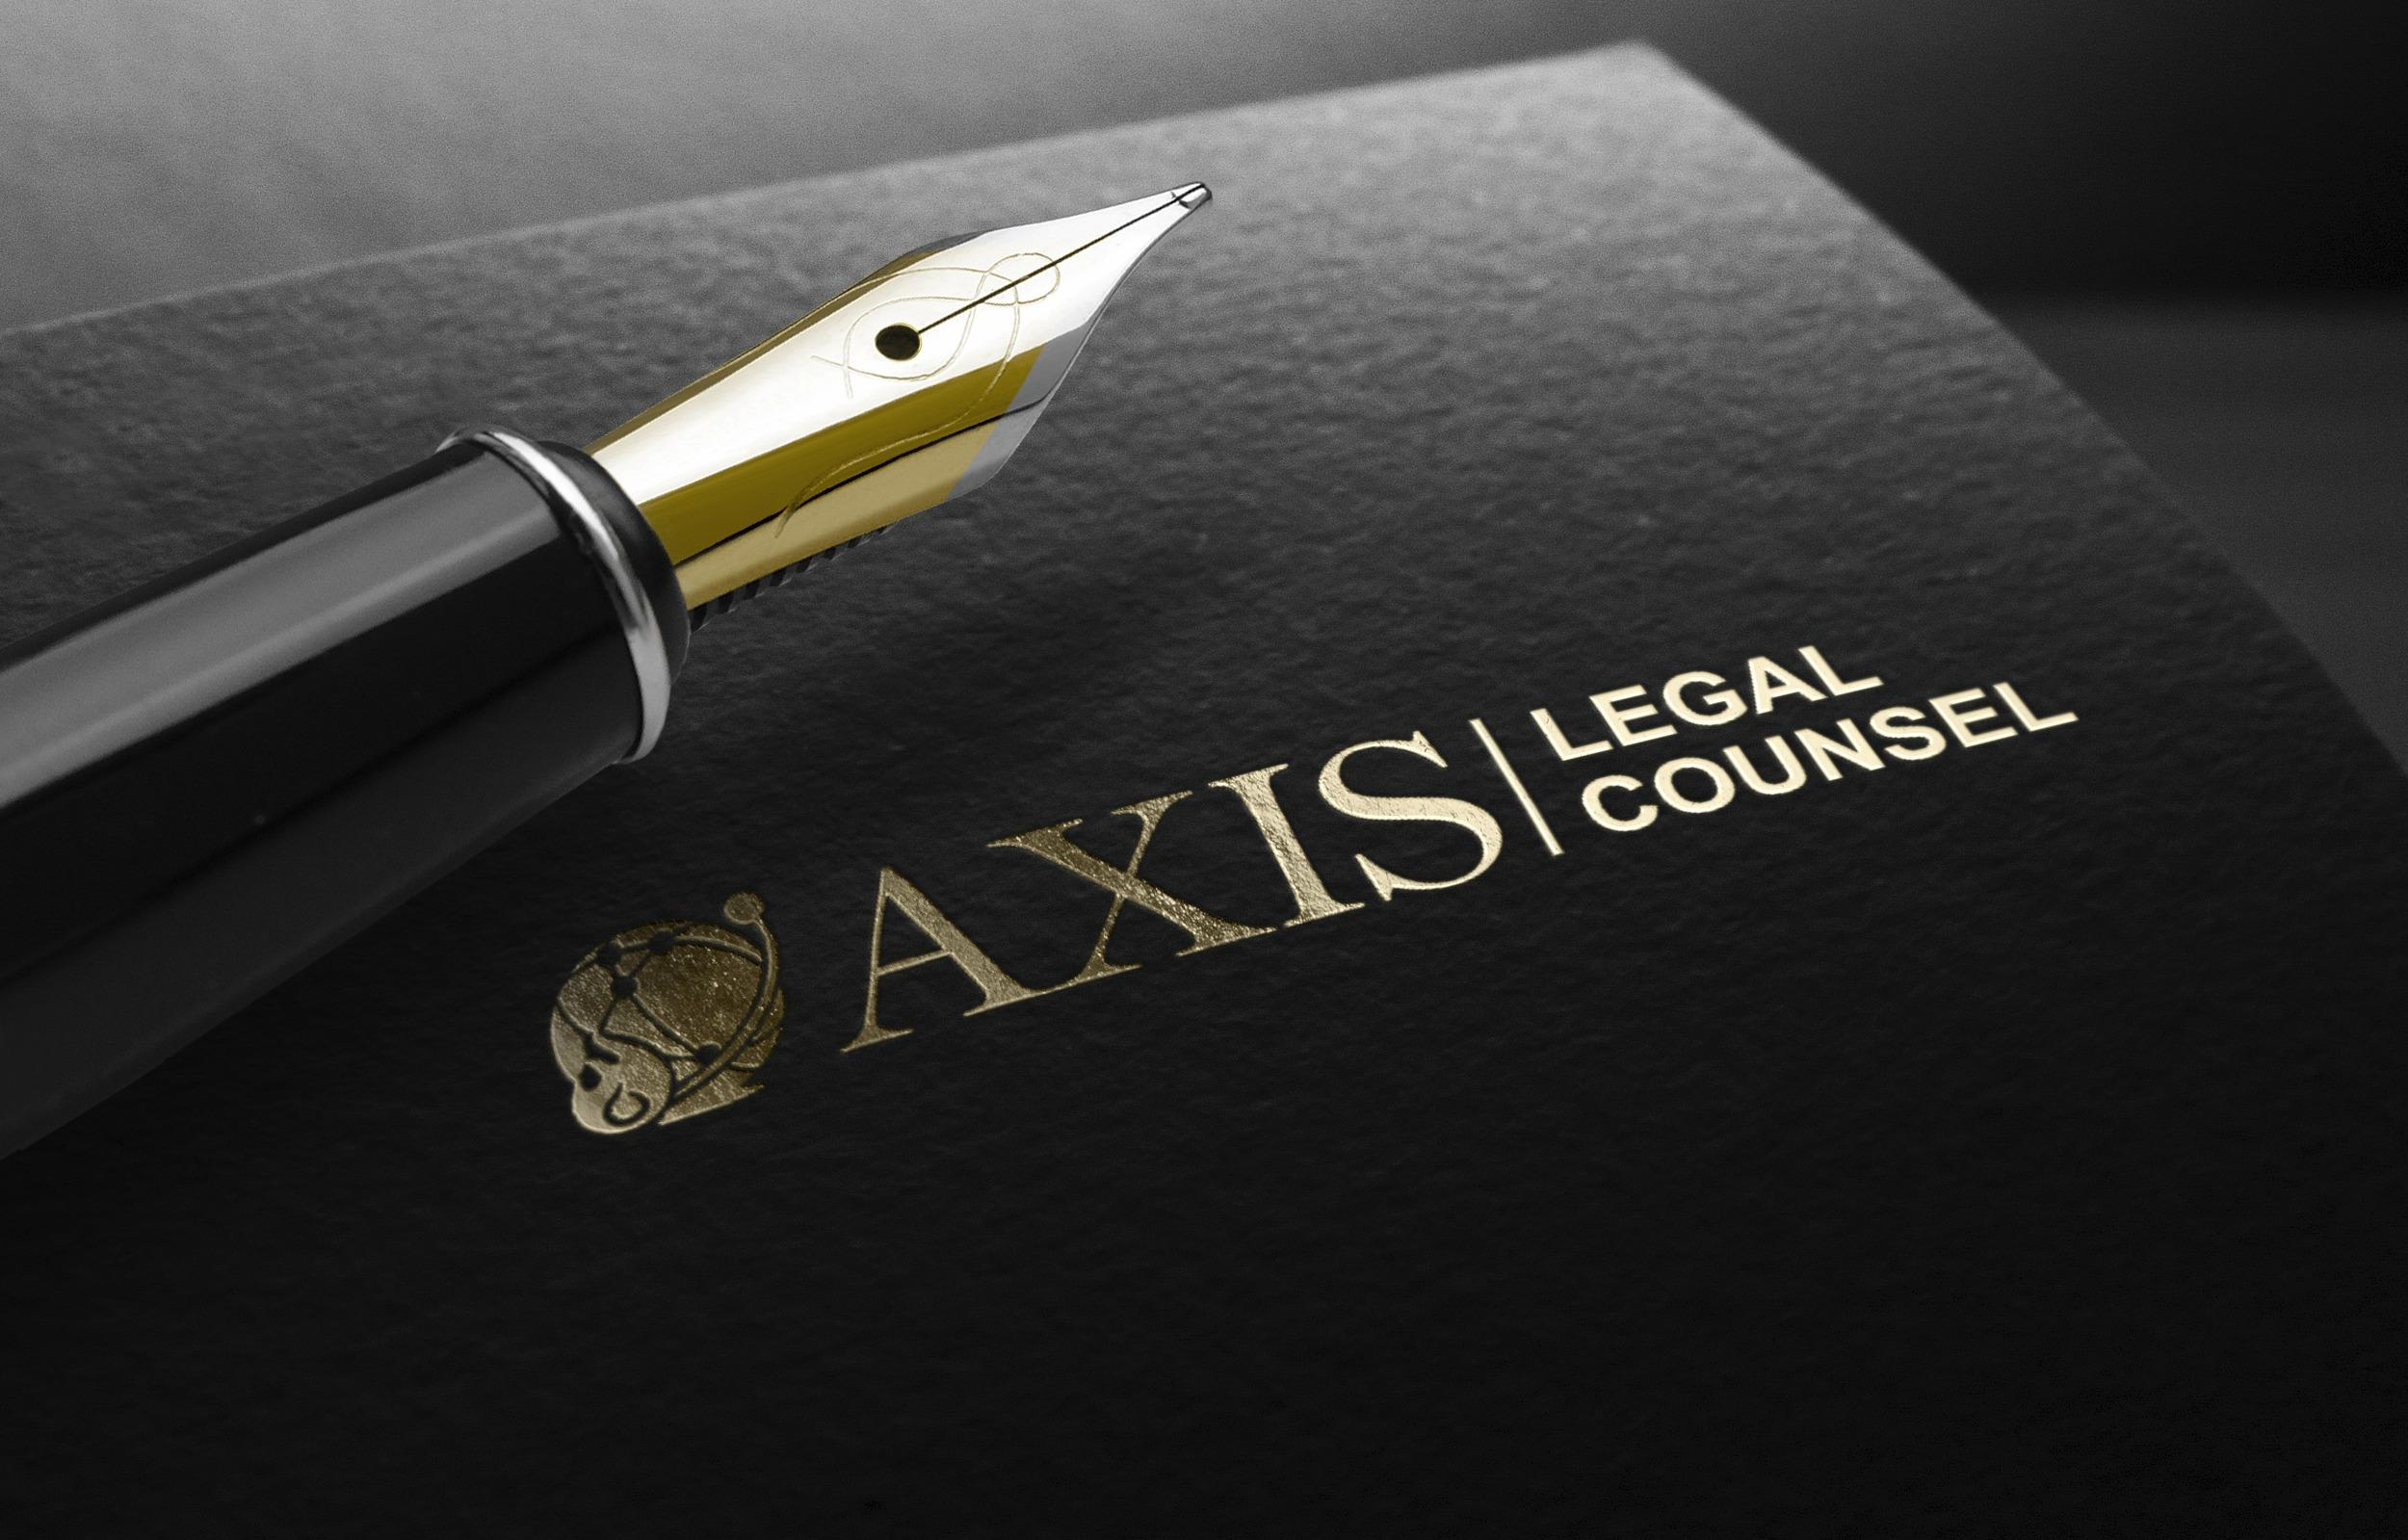 Axis legal counsel in los angeles ca 213 403 0 for 10877 wilshire boulevard 18th floor los angeles ca 90024